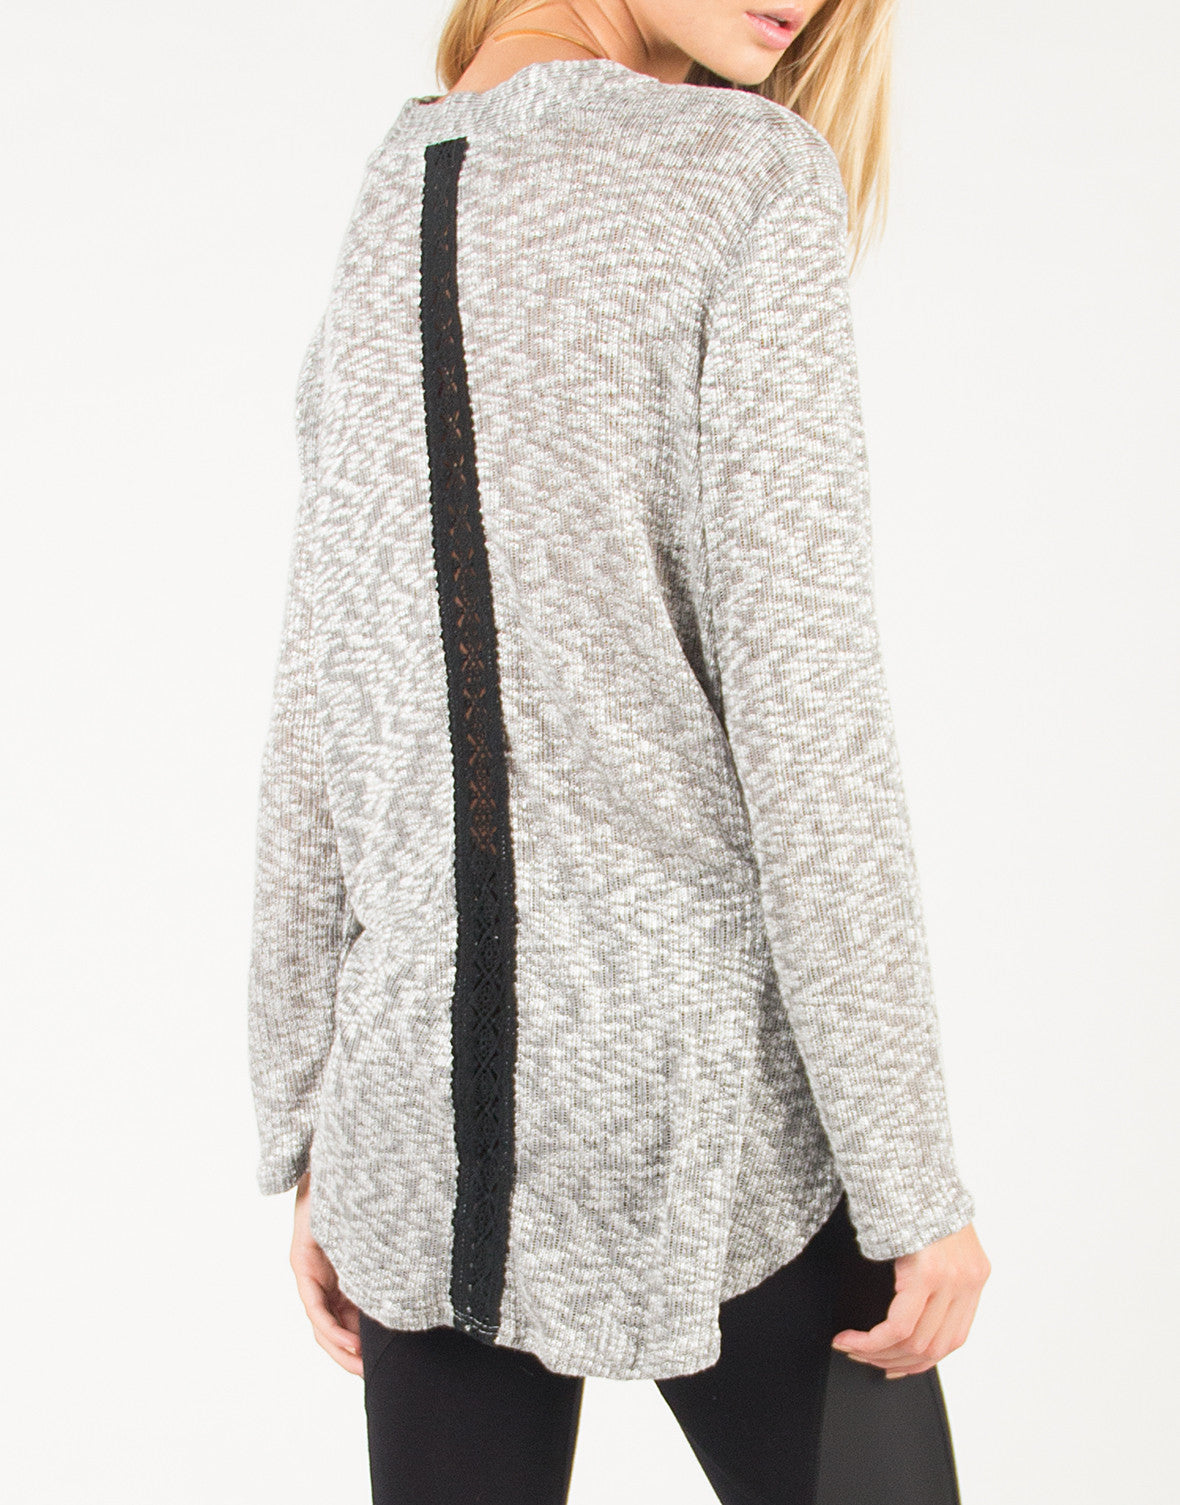 Draped Front Crochet Back Detail Long Sleeve Top - Gray